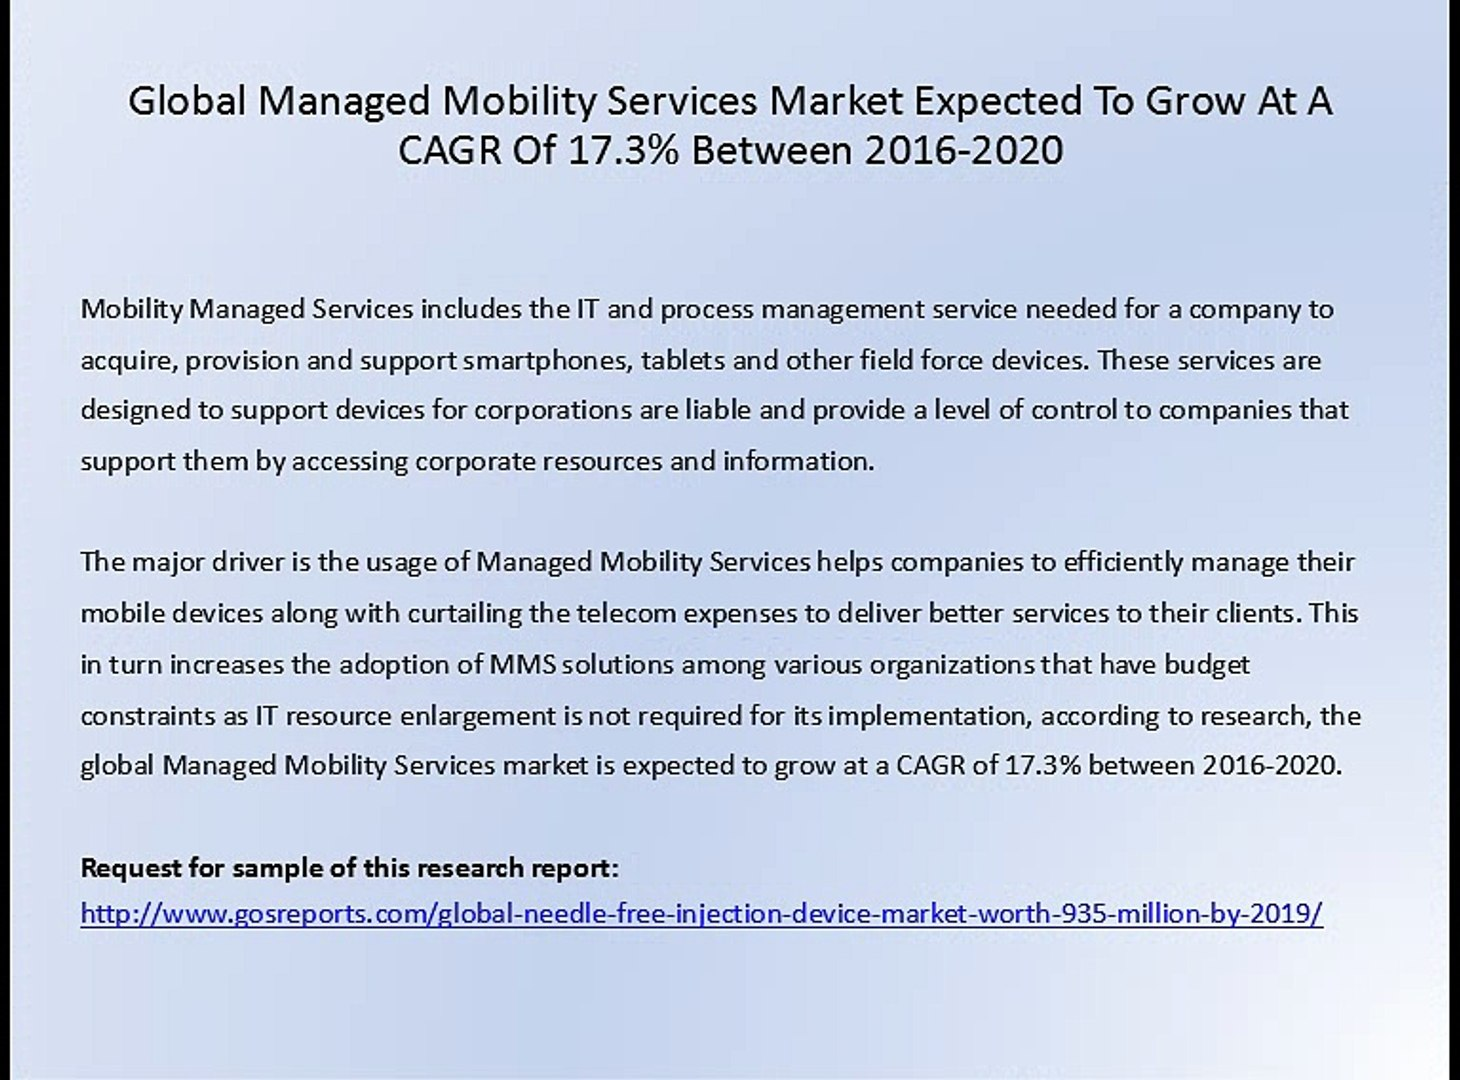 Global Managed Mobility Sehttp://www gosreports com/grvices Market Expected  To Grow At A CAGR Of 17 3% Between 2016-2020